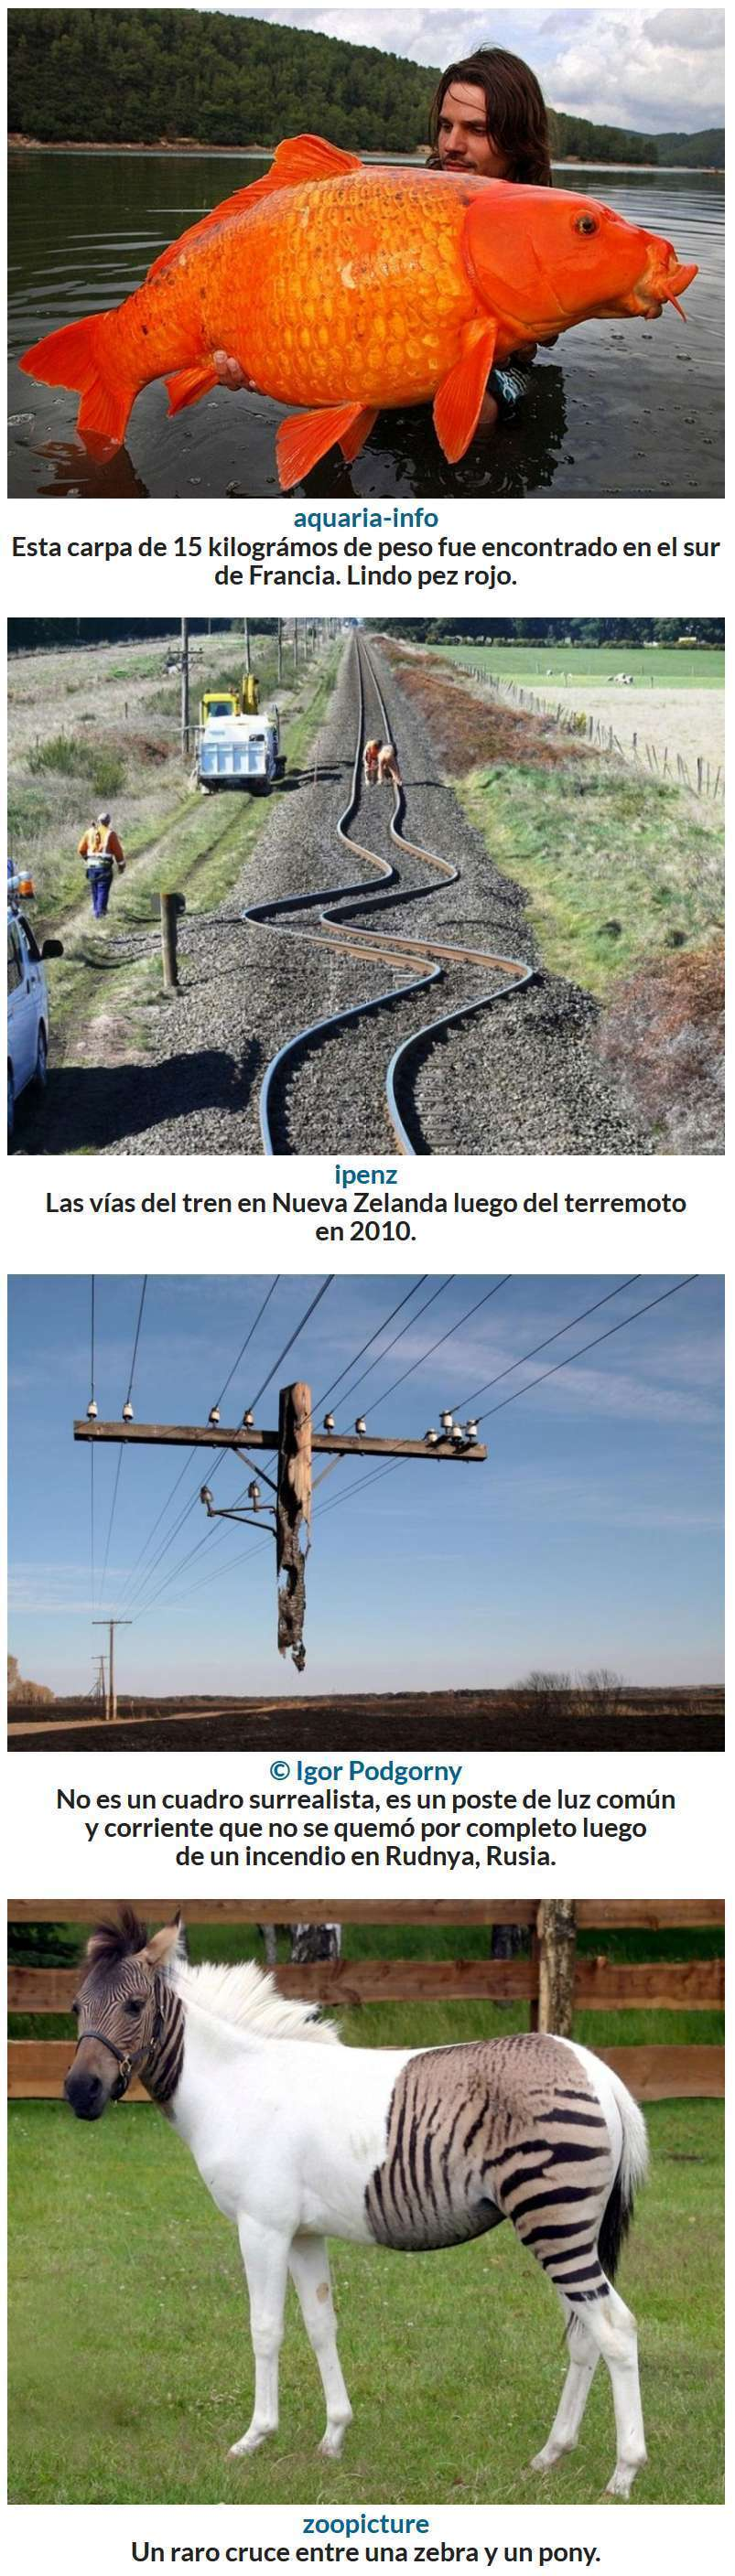 No es photoshop, son fotografias reales, 2 Parte